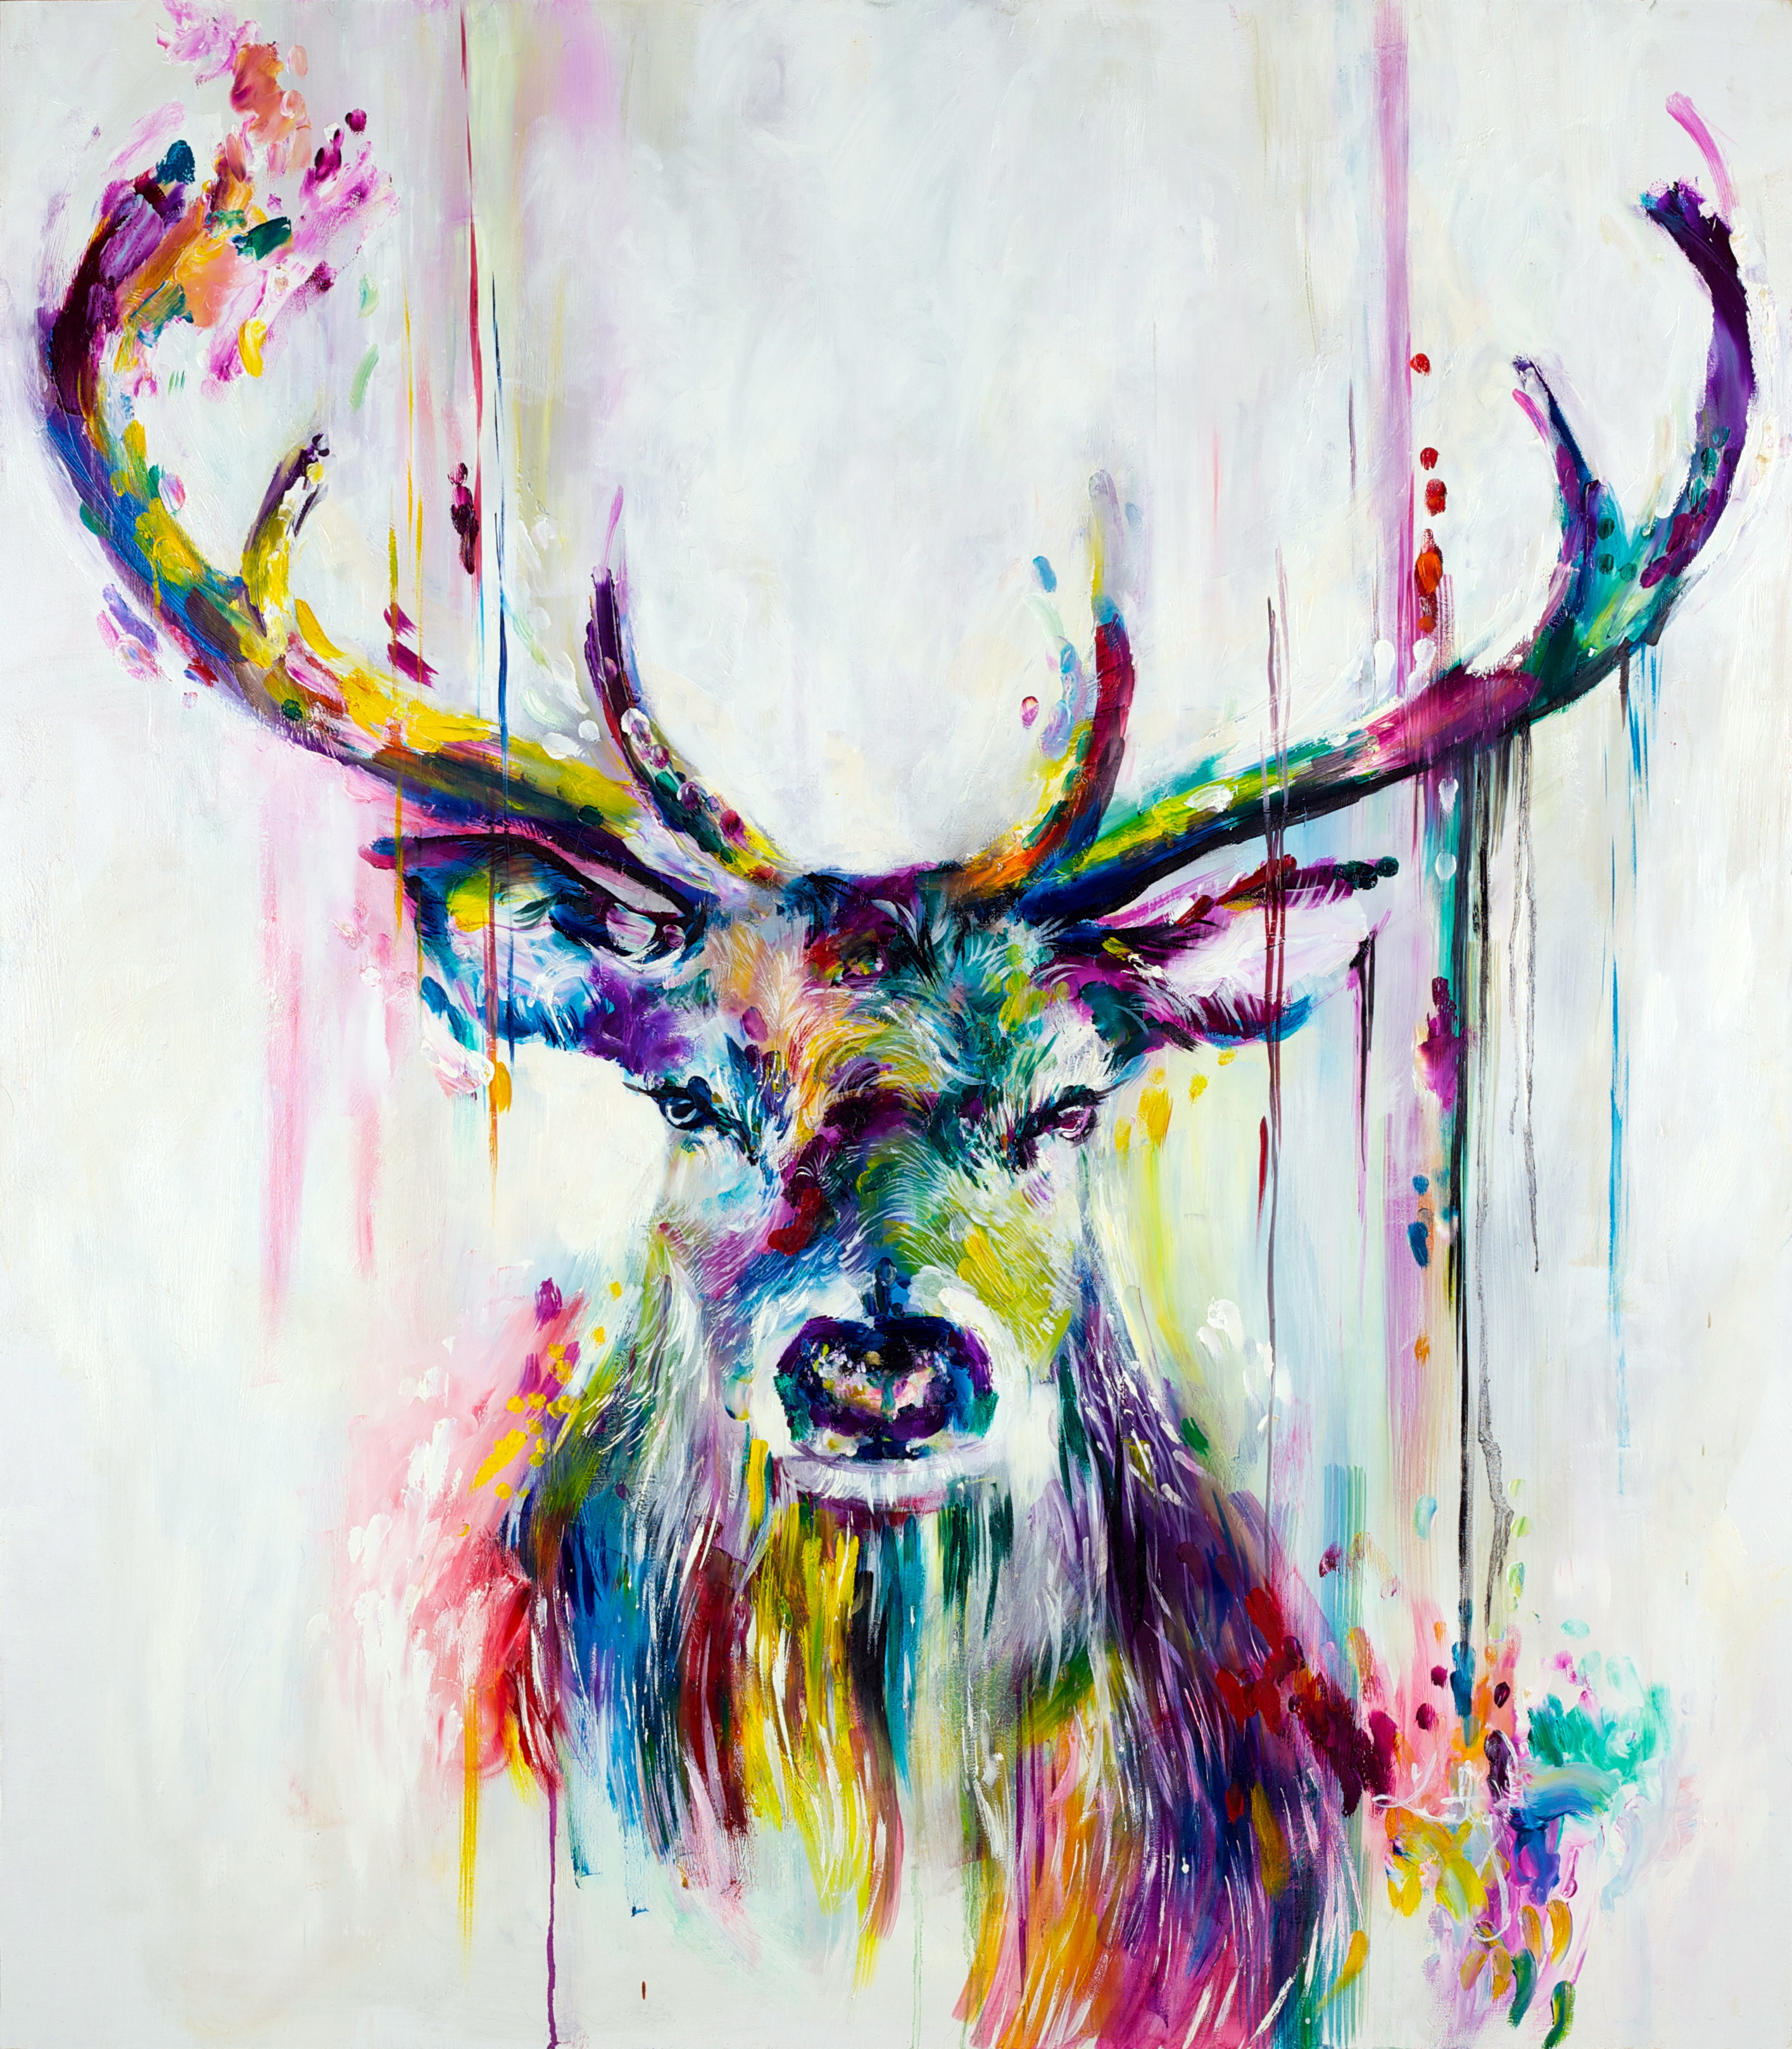 Drawn stag abstract Dobson Oil 'Prism Jade